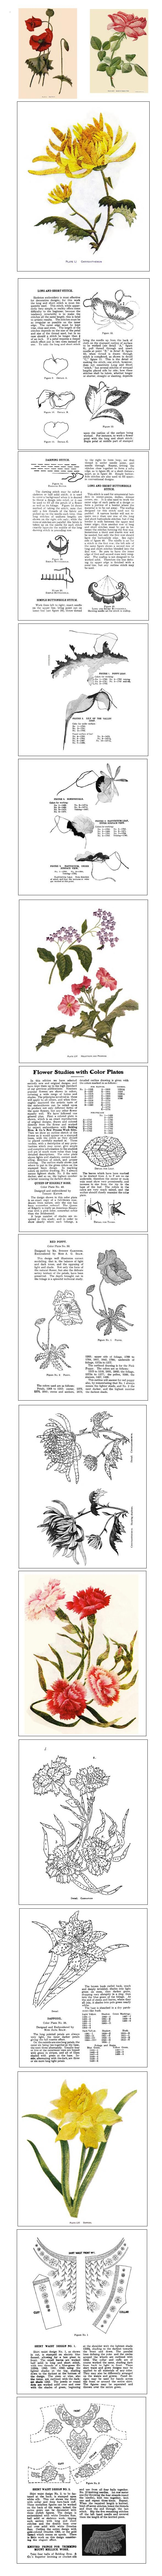 CD ROM Titled: Silk Embroidery.  Clear easy to understand instructions from an old 1902 publication on how to hand embroider beautiful life-like floral designs using silk thread. Click the image to go to our ebay listing.